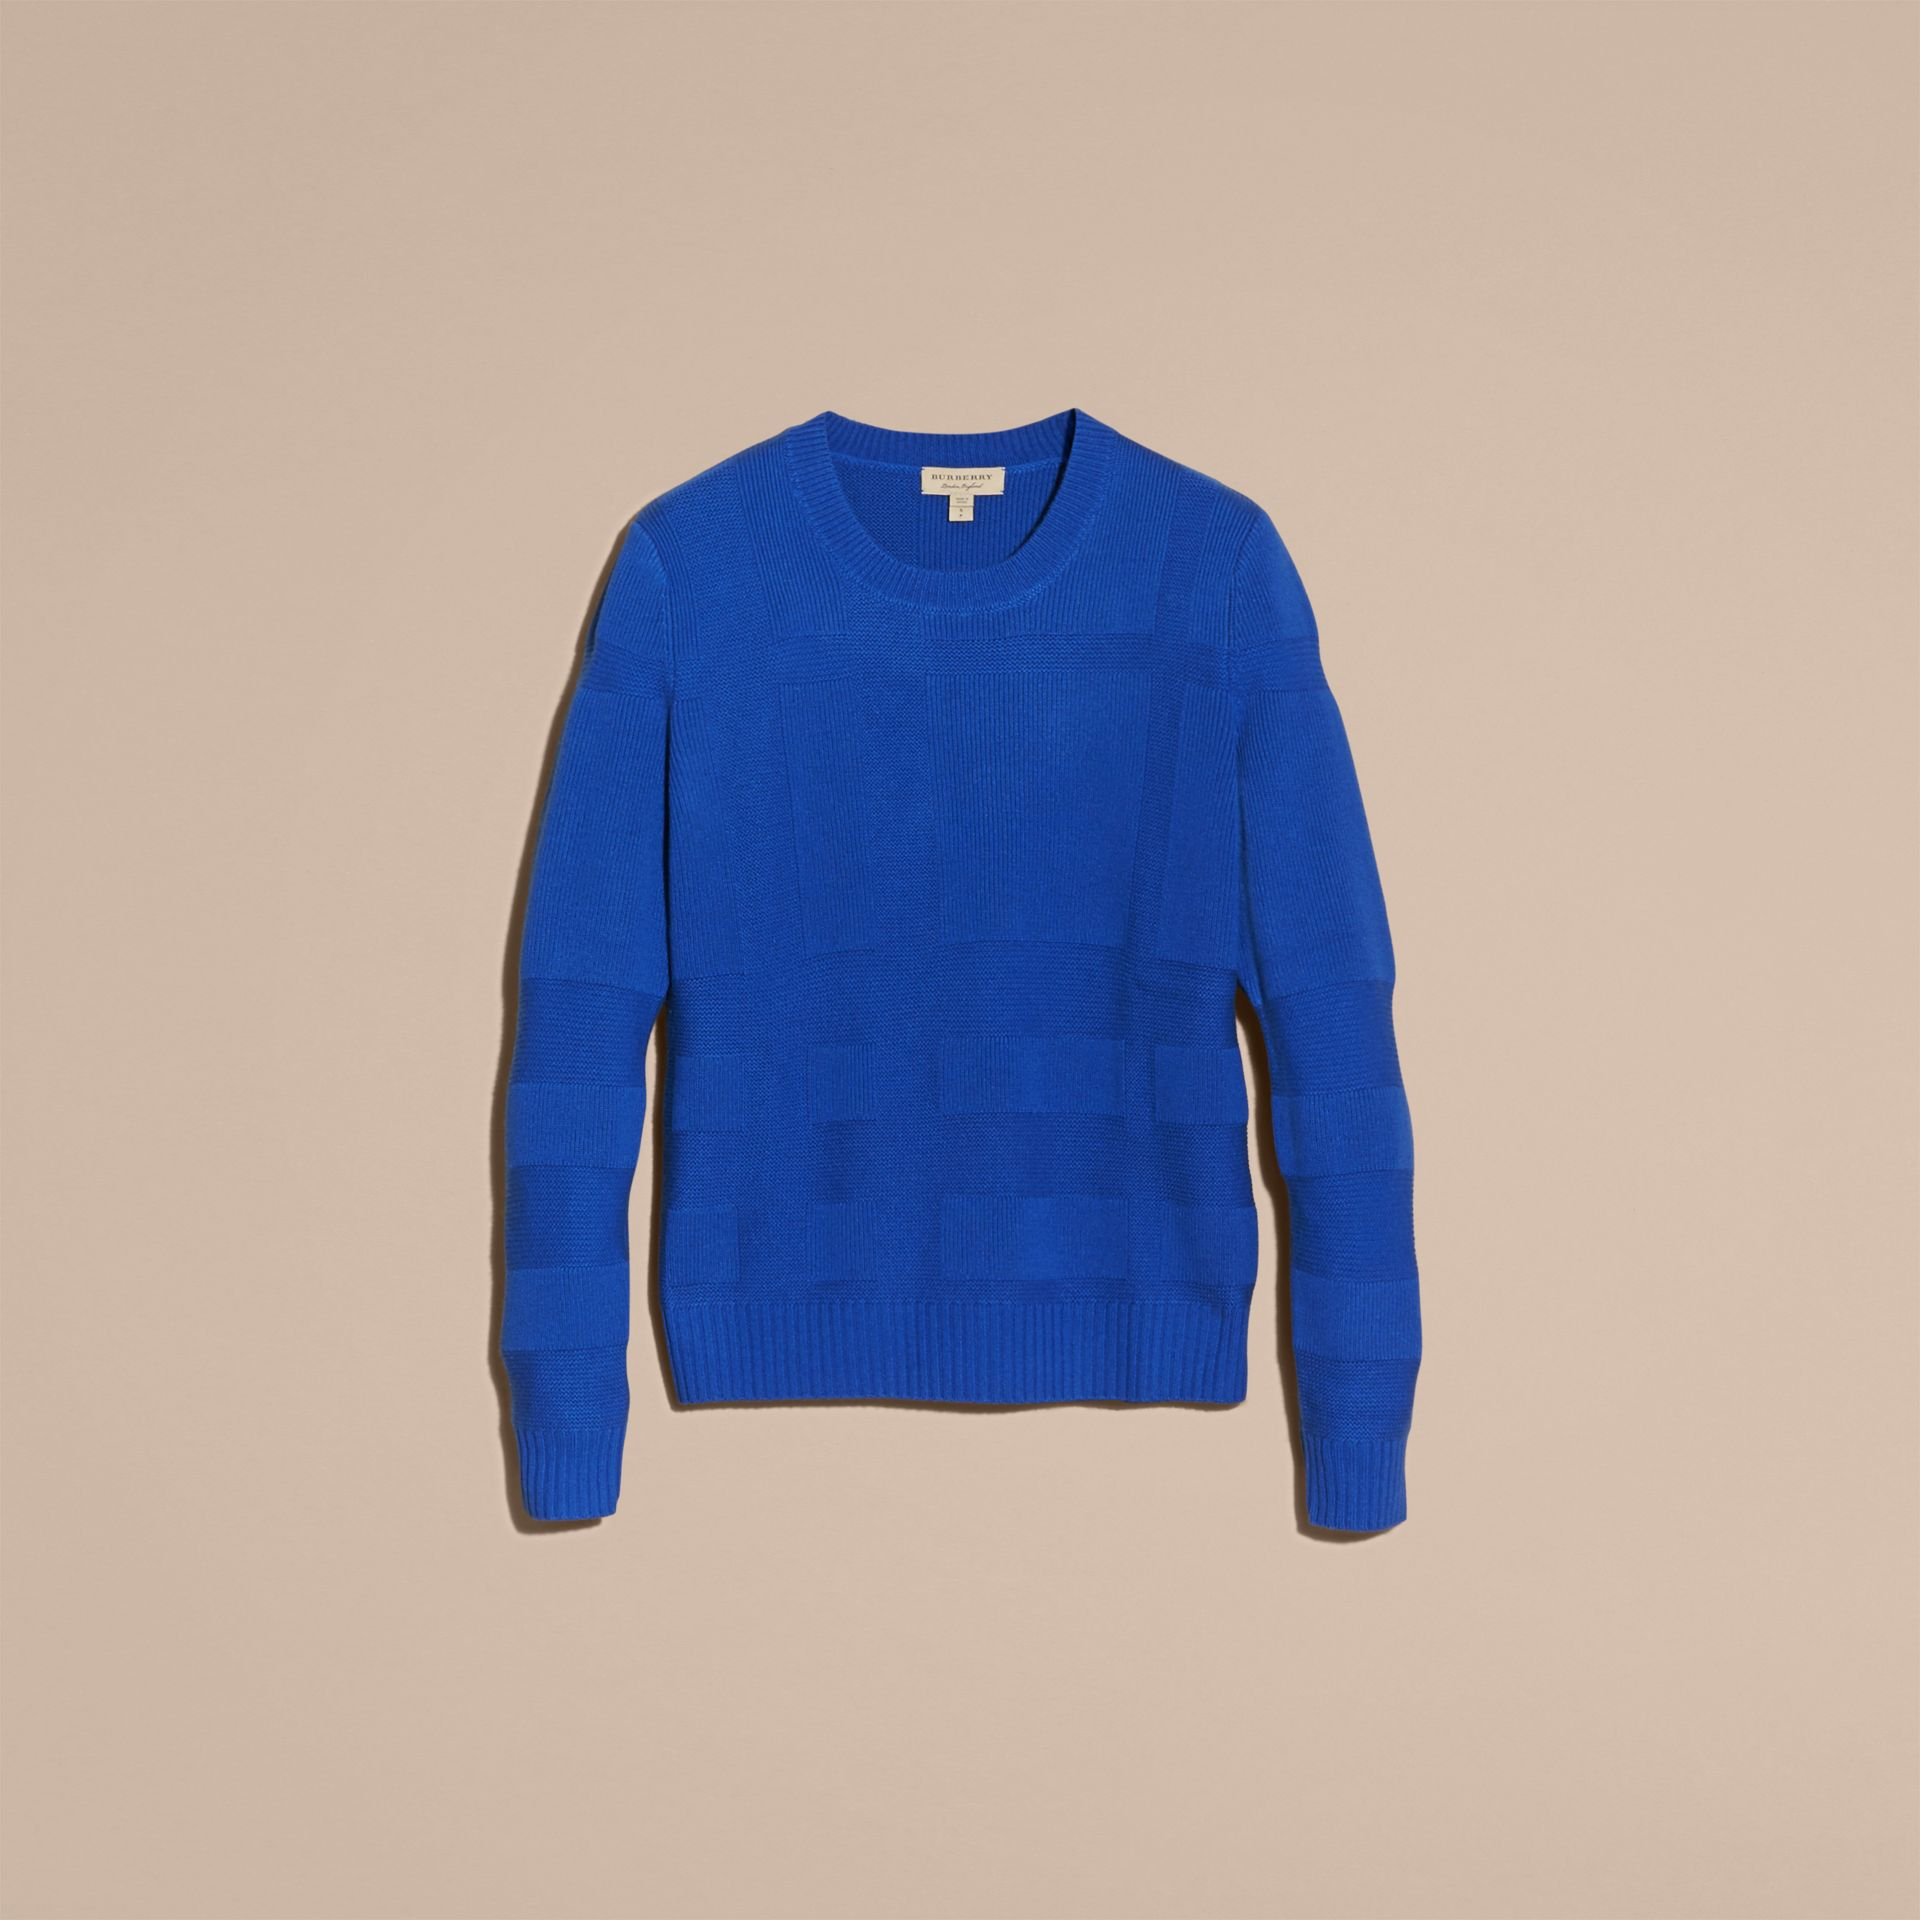 Sapphire blue Check-knit Wool Cashmere Sweater Sapphire Blue - gallery image 4